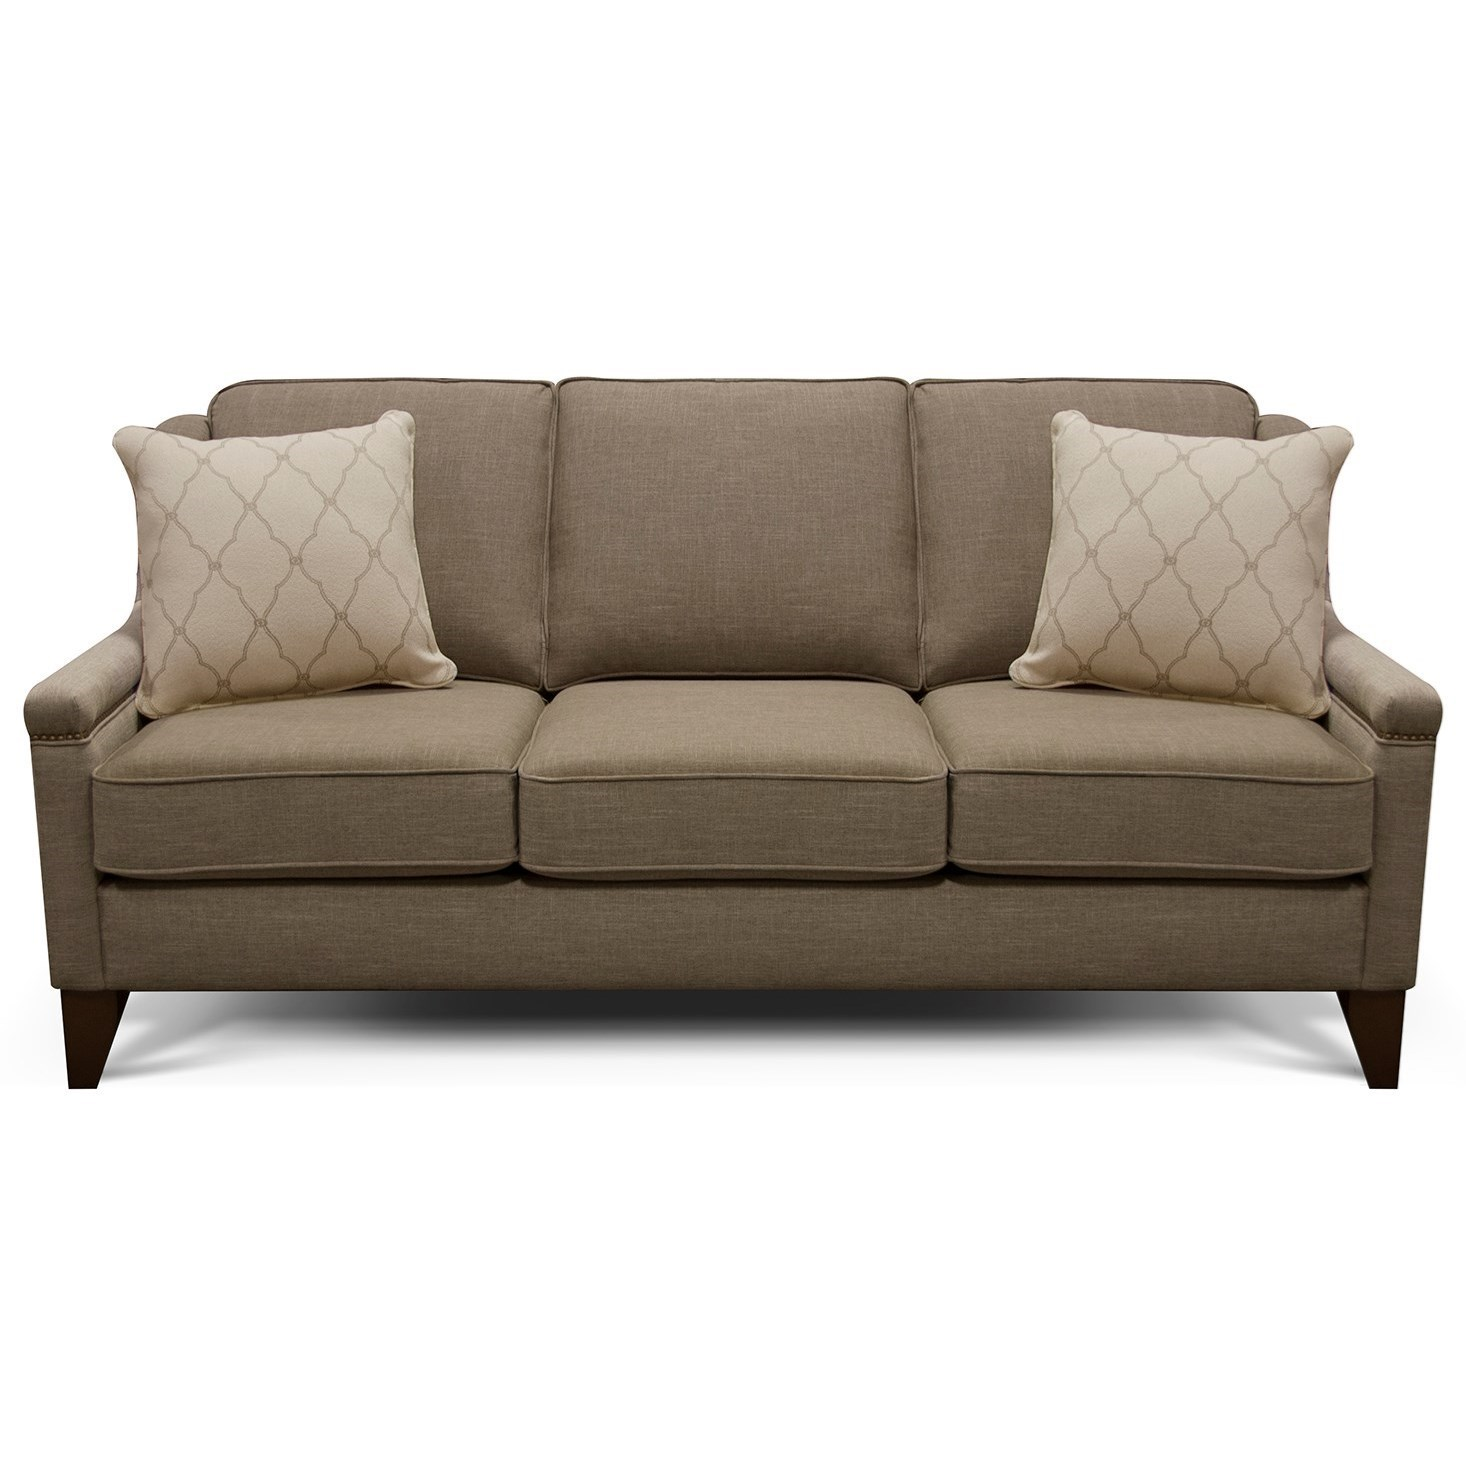 England Kendra Sofa with Contemporary Style Dunk